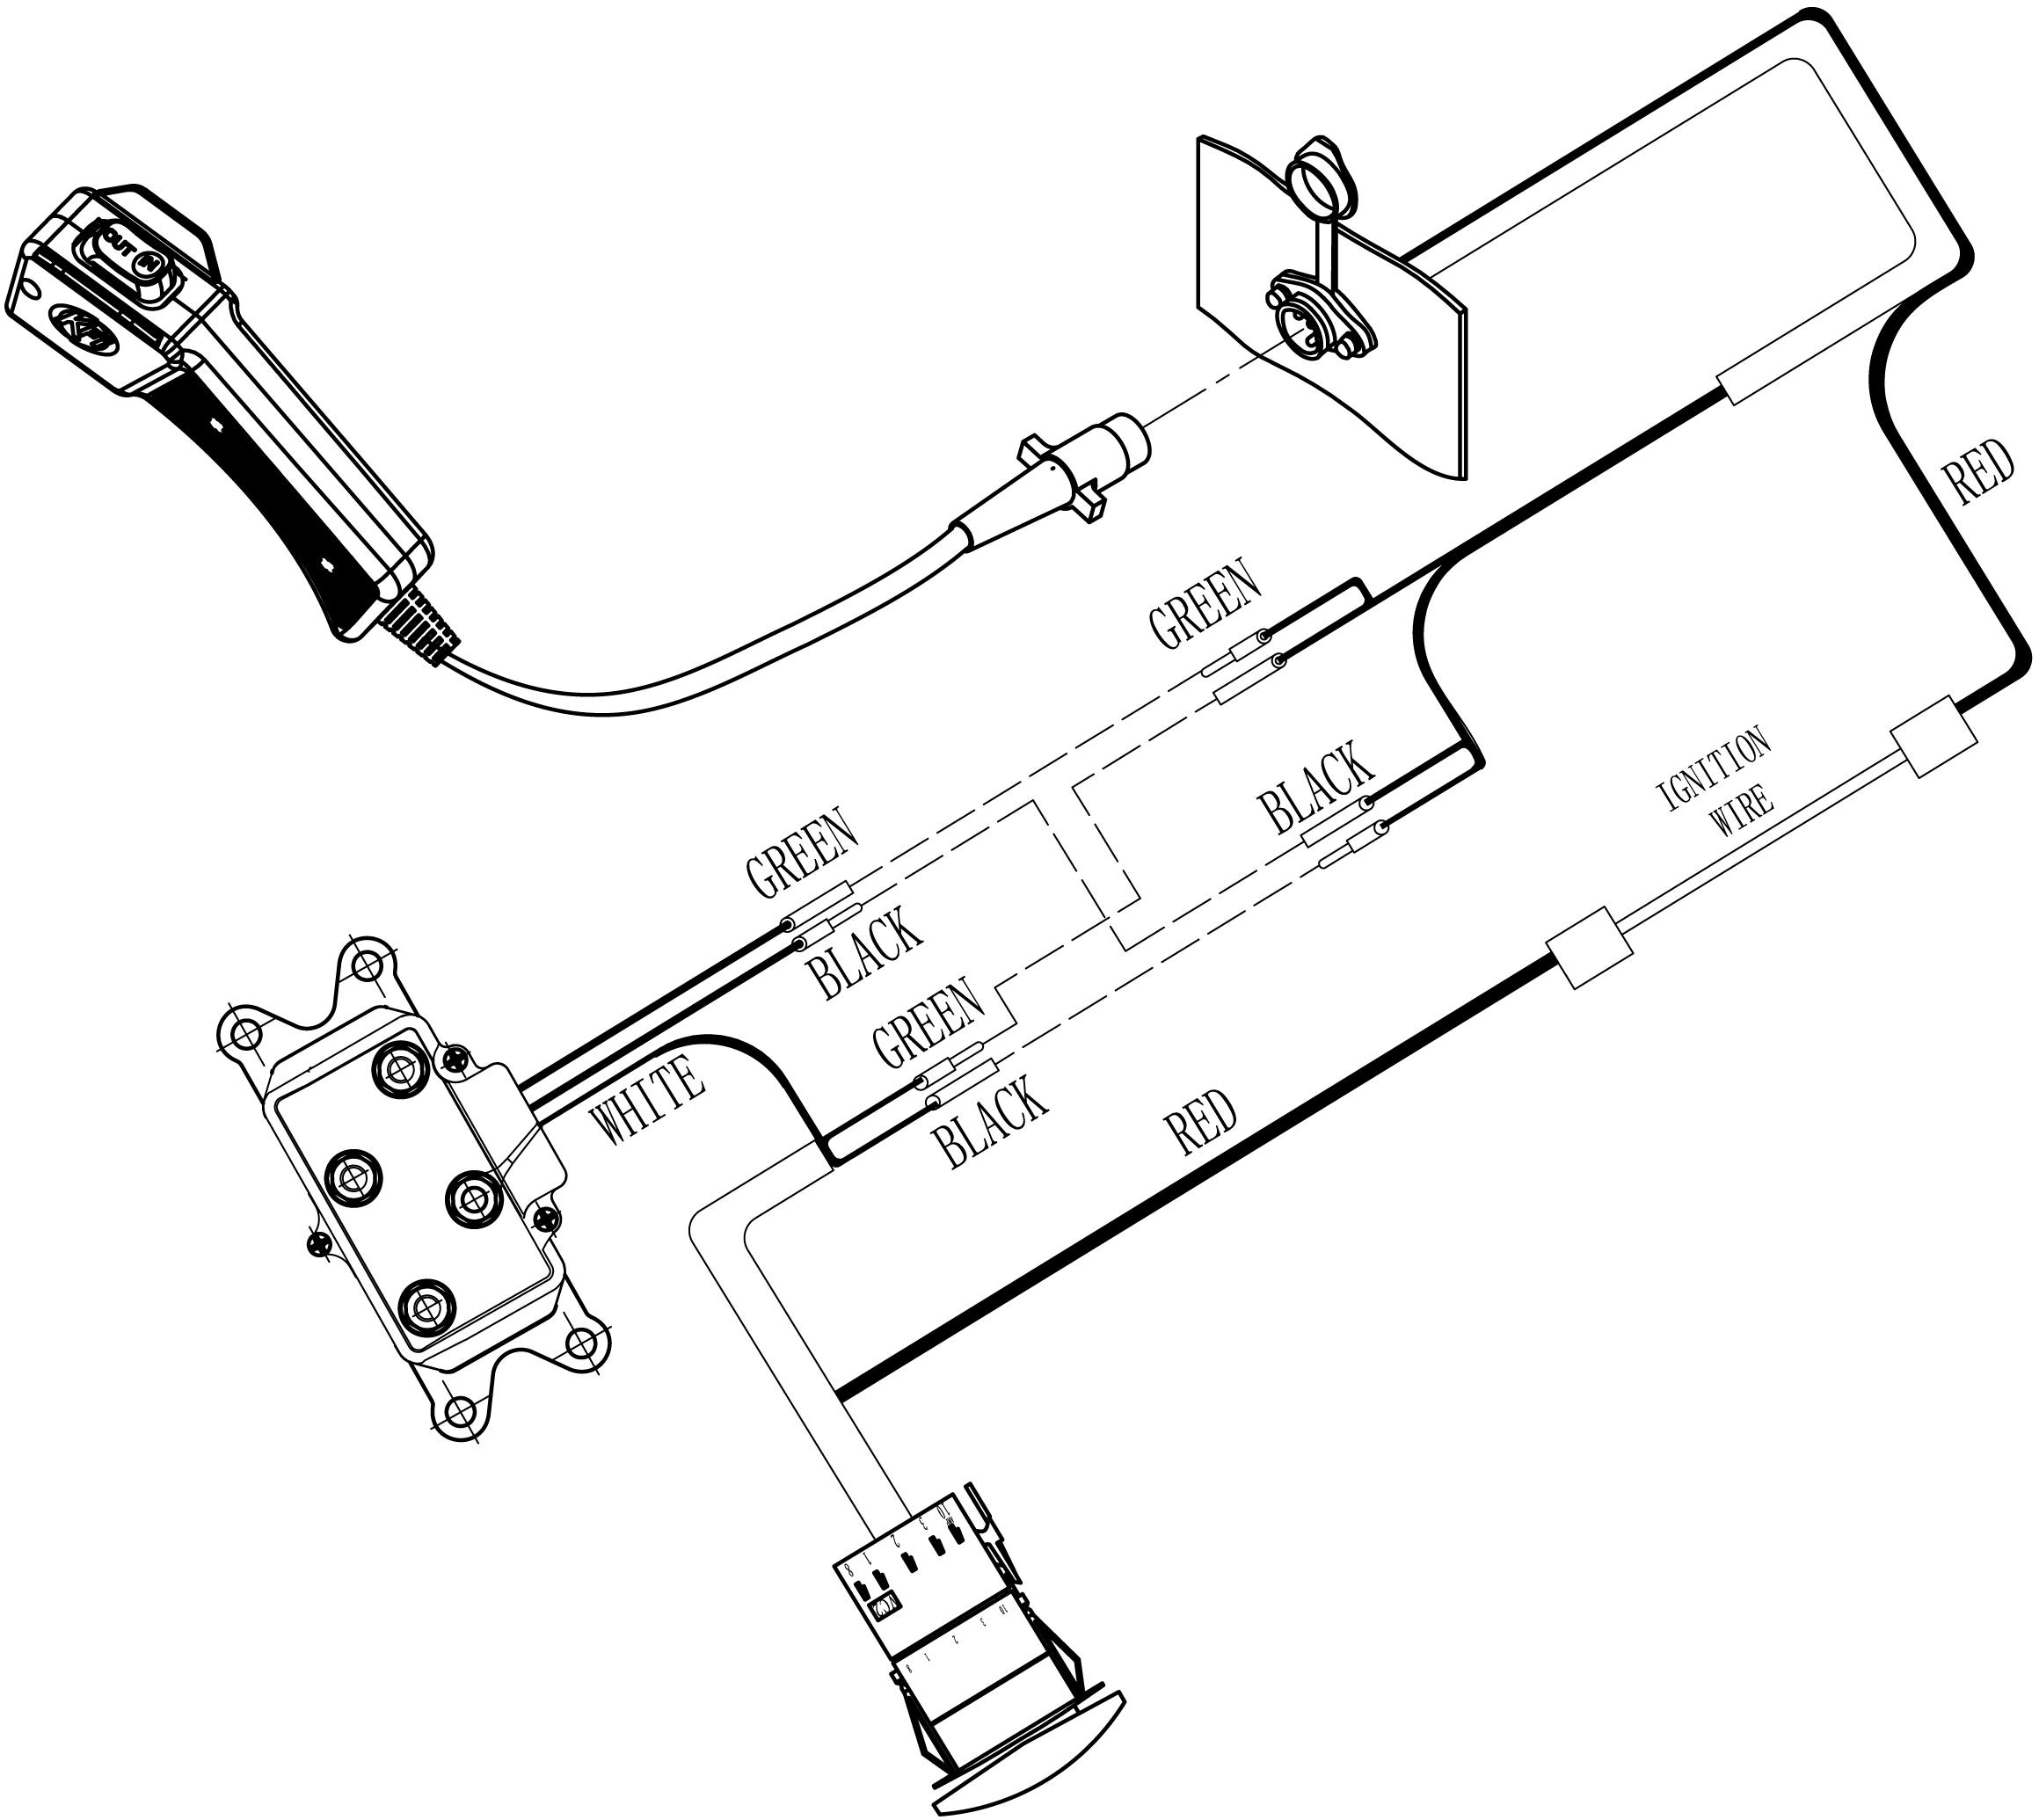 KFI_Carling_Switch_Wring_Diagram assault winch contactor kfi atv winch, mounts and accessories master lock winch wiring diagram at gsmx.co